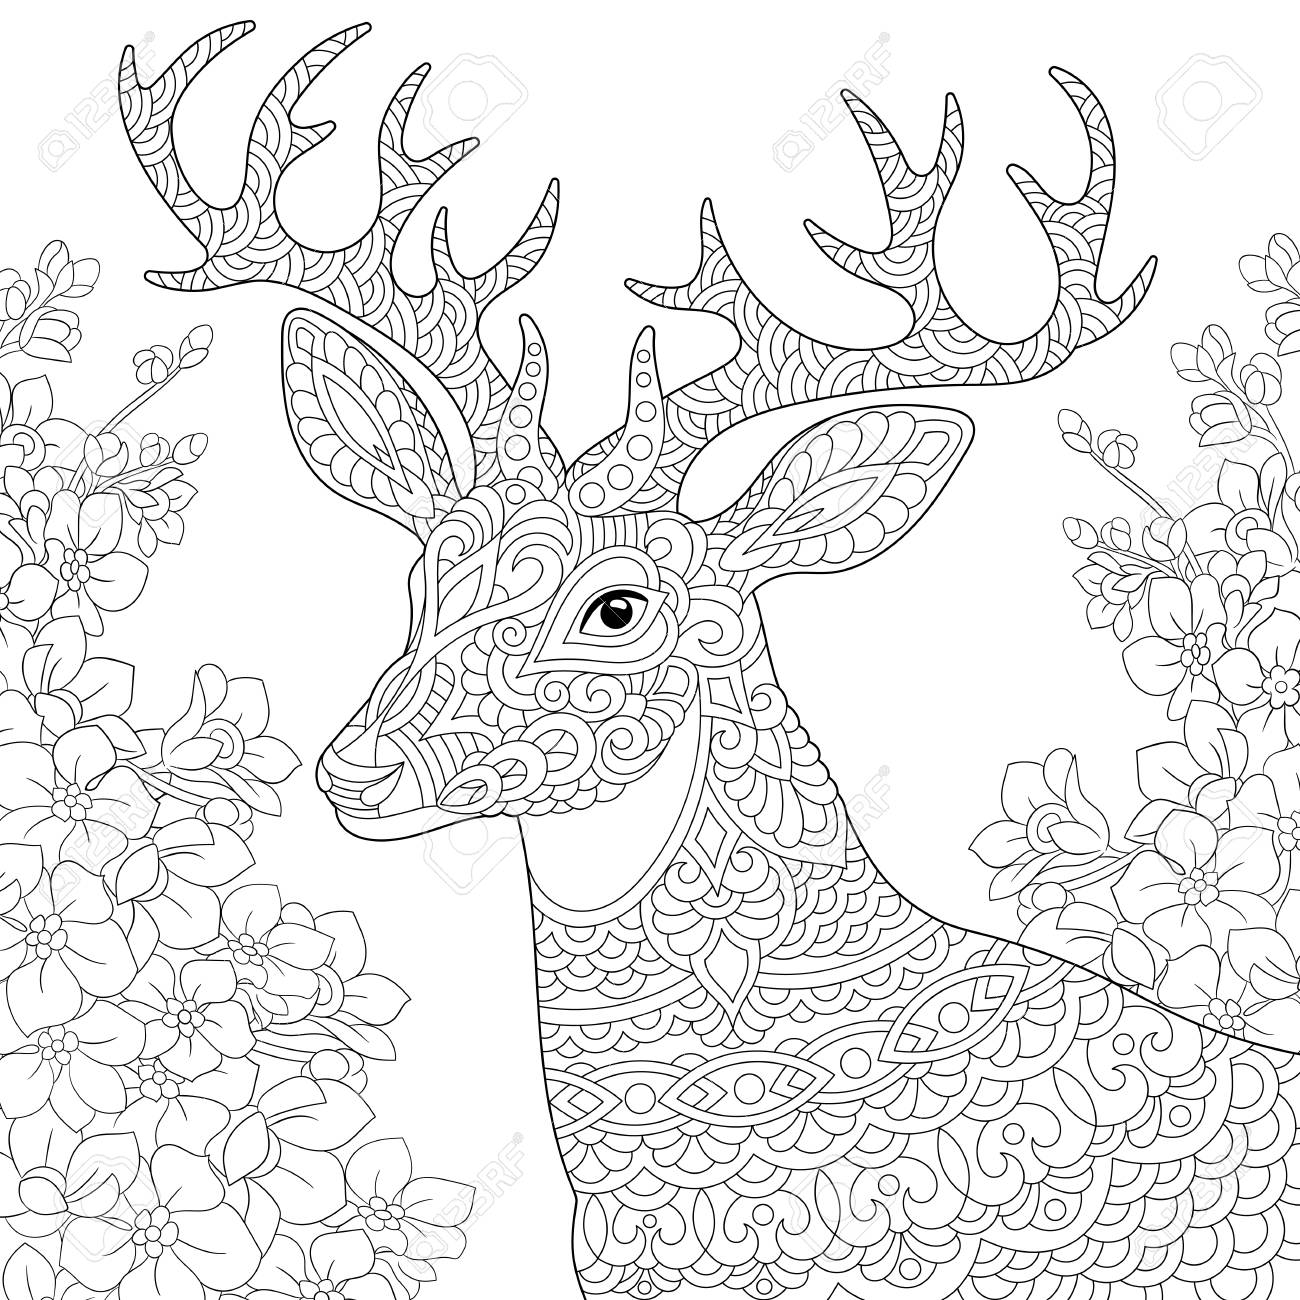 Coloring Page Coloring Book Anti Stress Colouring Picture With Royalty Free Cliparts Vectors And Stock Illustration Image 119294525